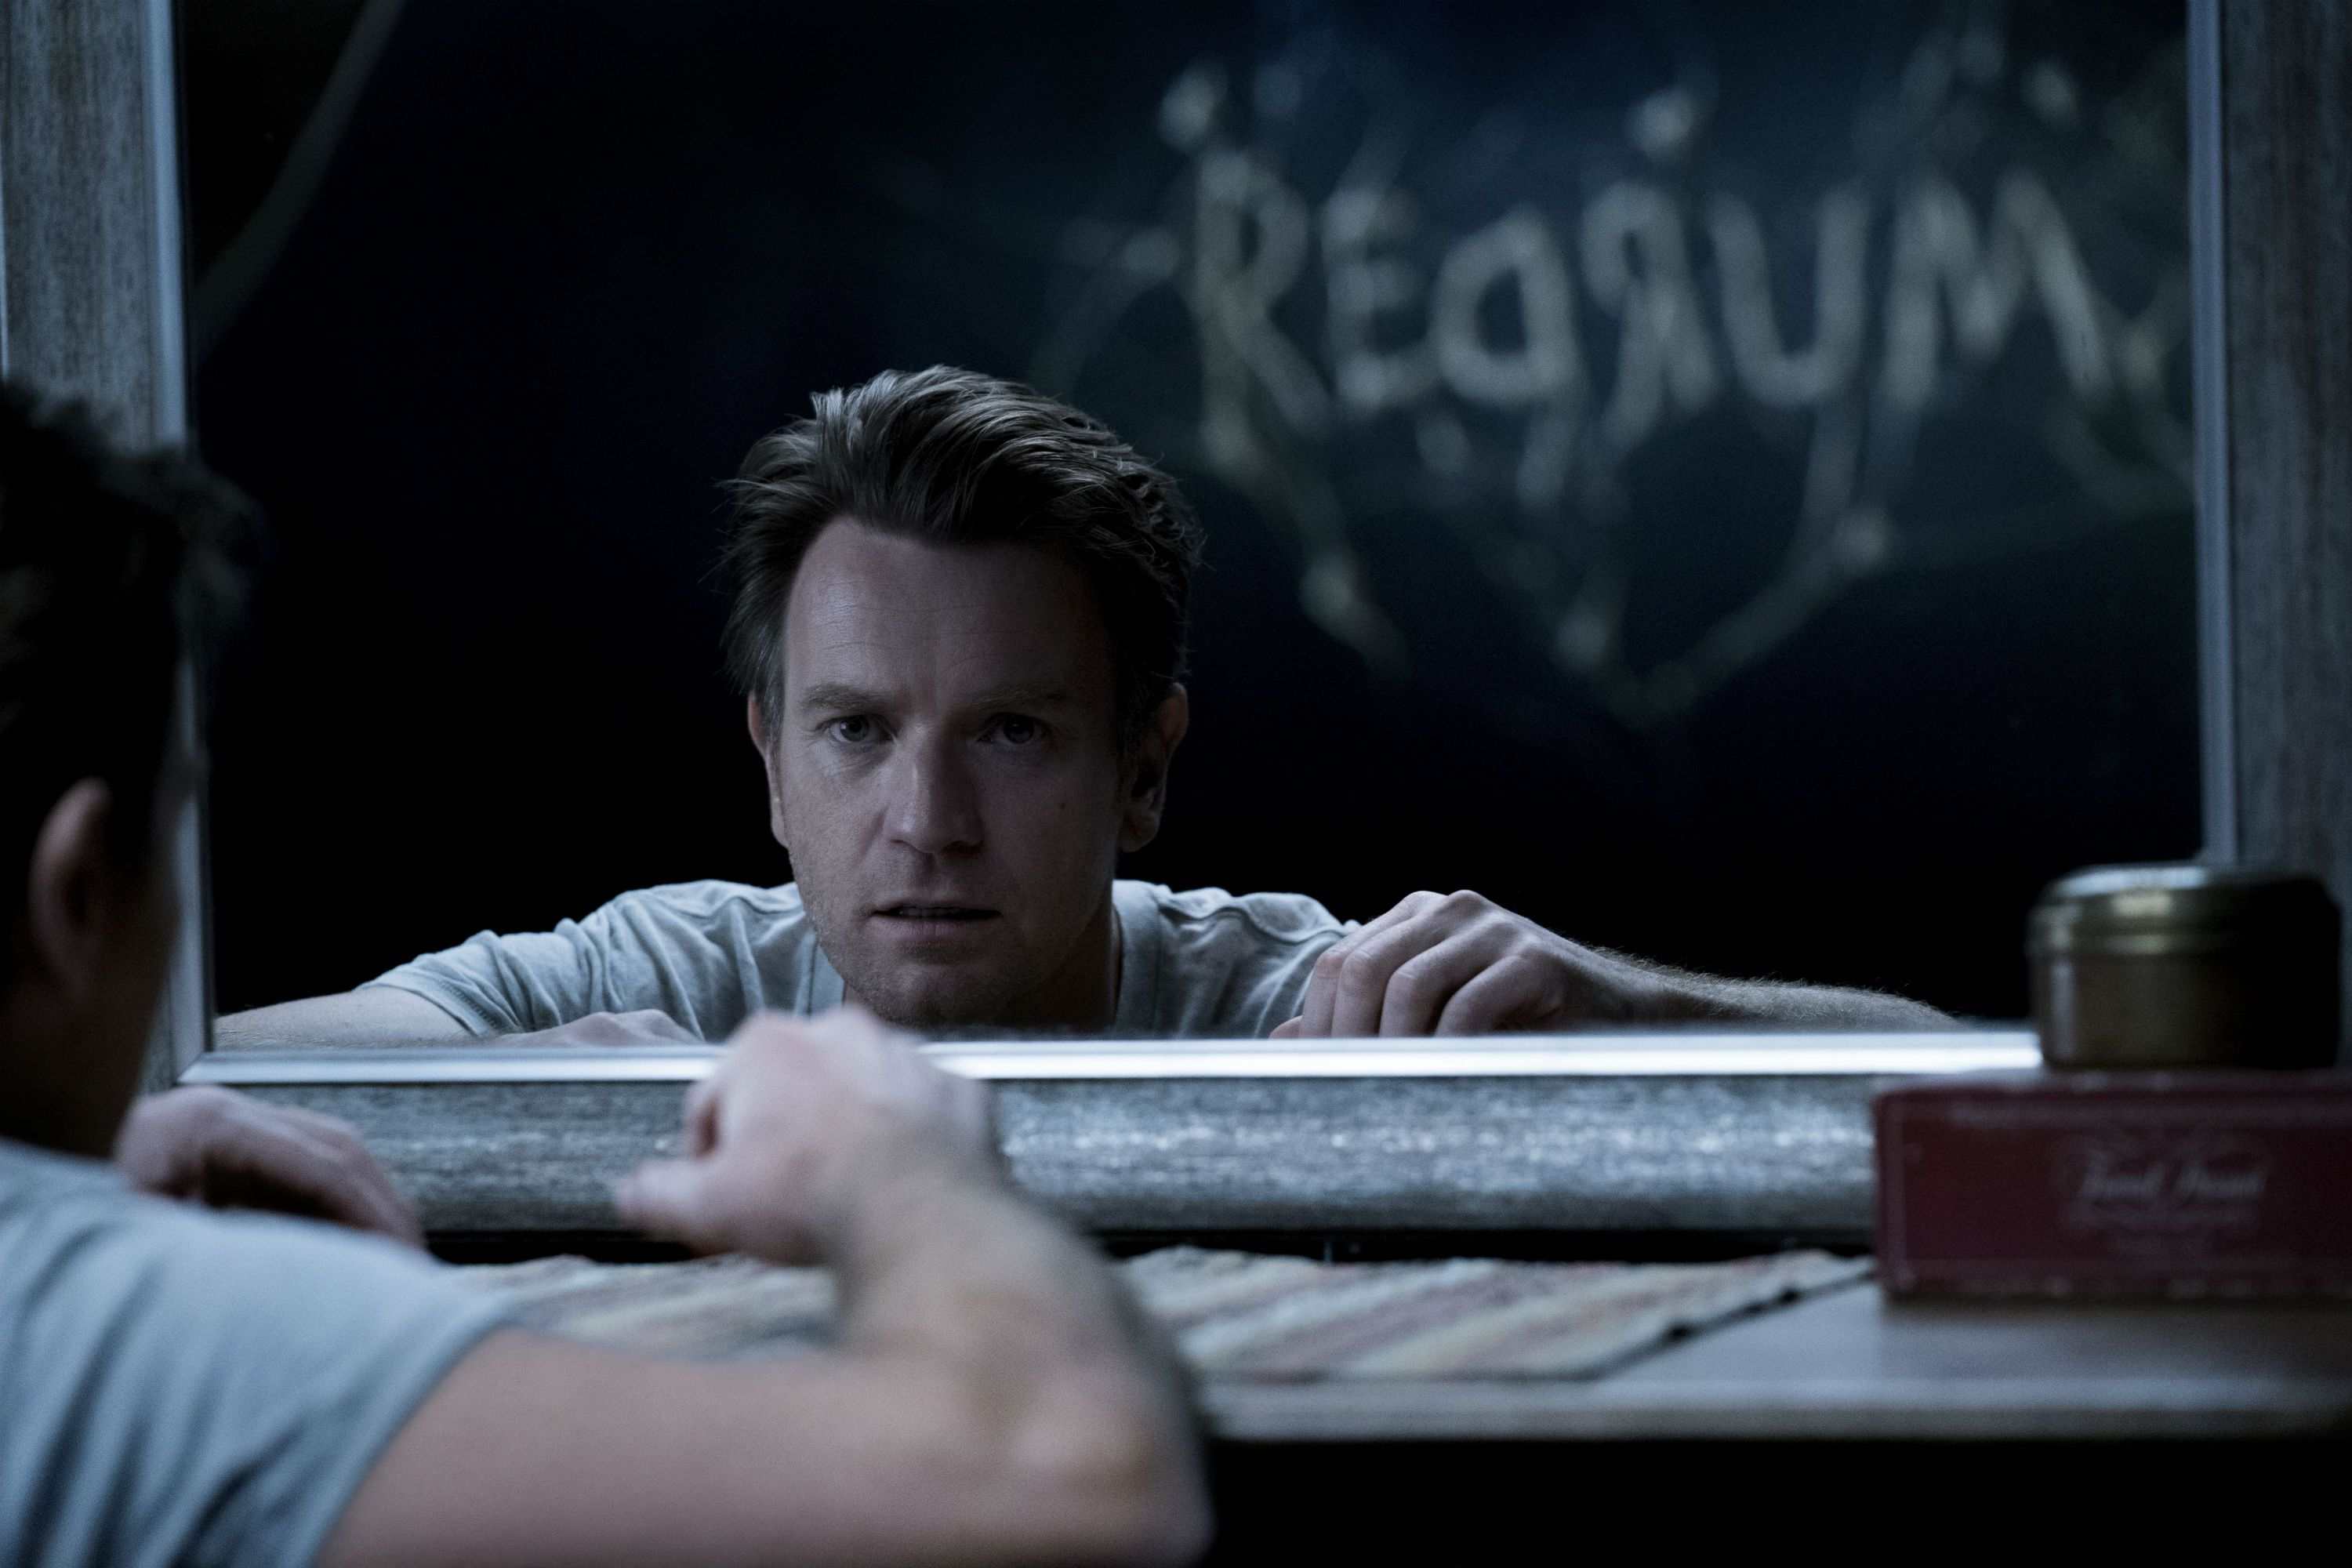 Who's playing *that* major cameo role in Doctor Sleep?